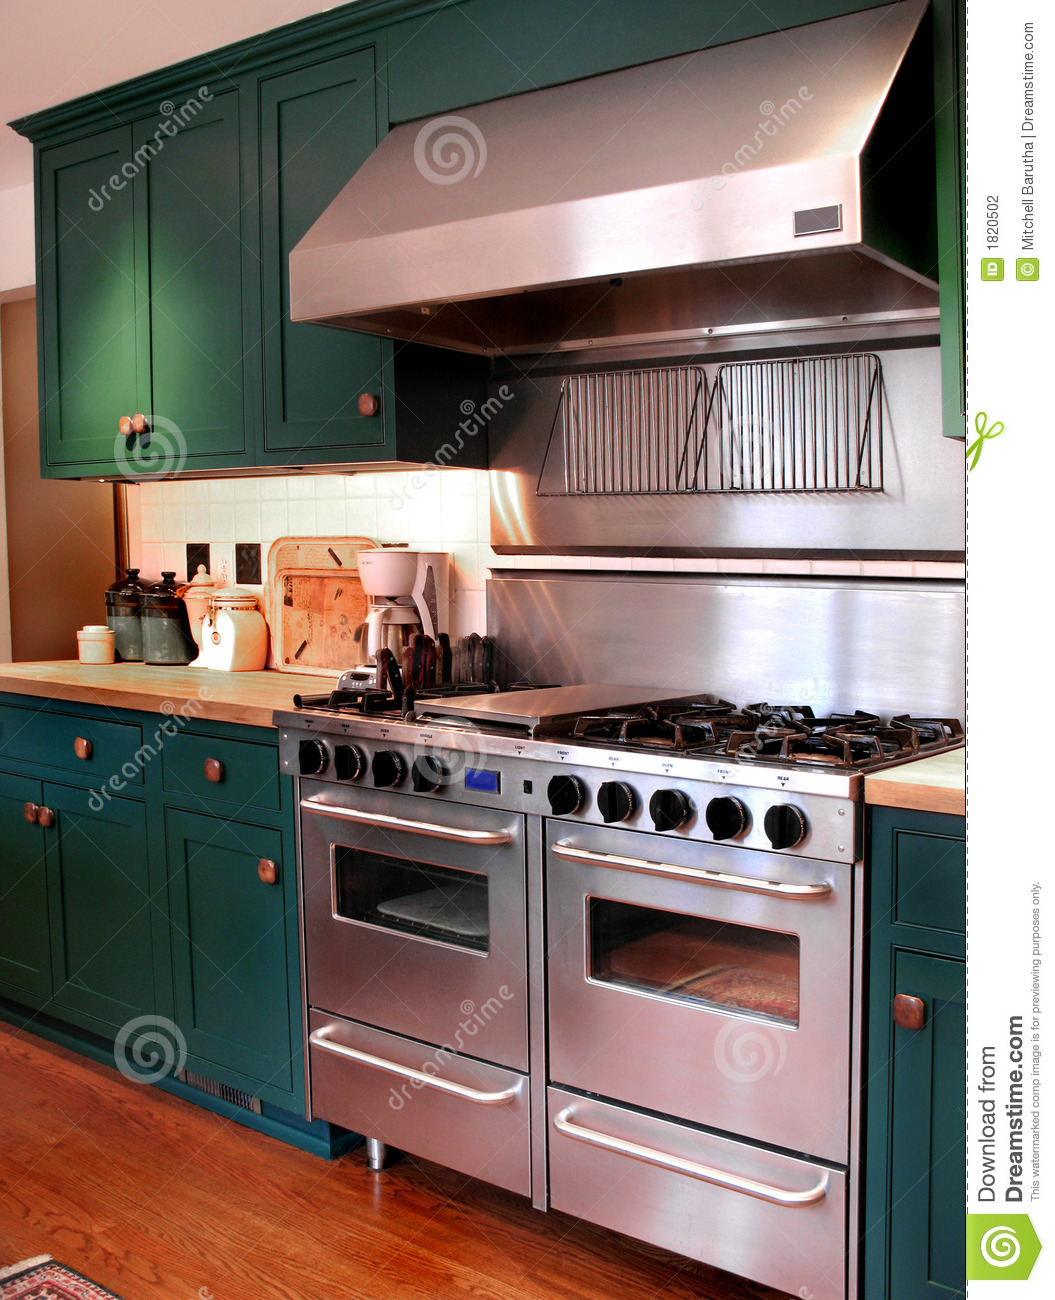 Kitchen Bar With Stove: Pro Model Kitchen Stove Stock Photo. Image Of Chair